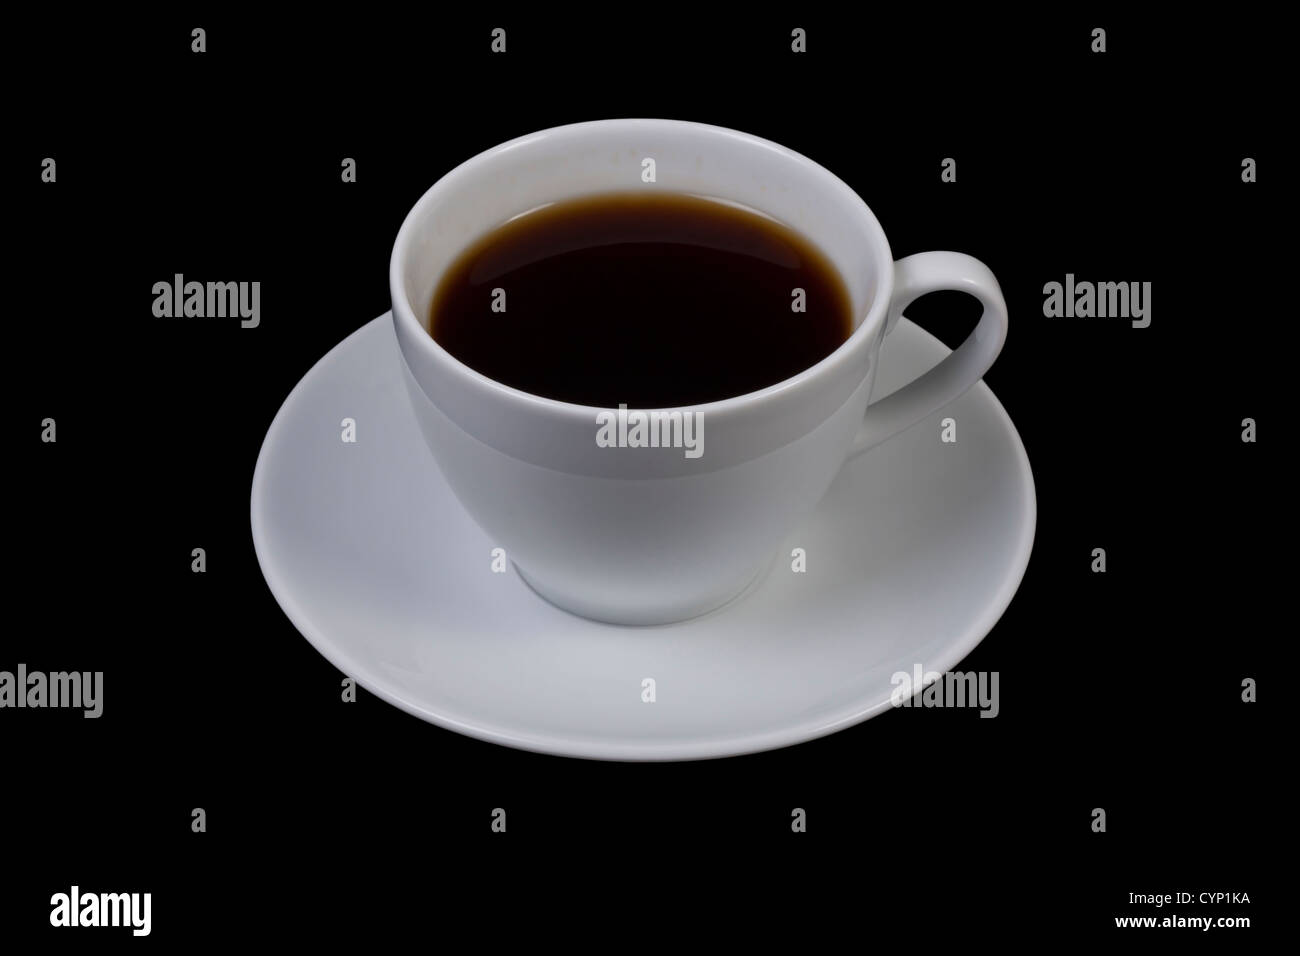 Closeup of a cup of coffee on a black background. - Stock Image